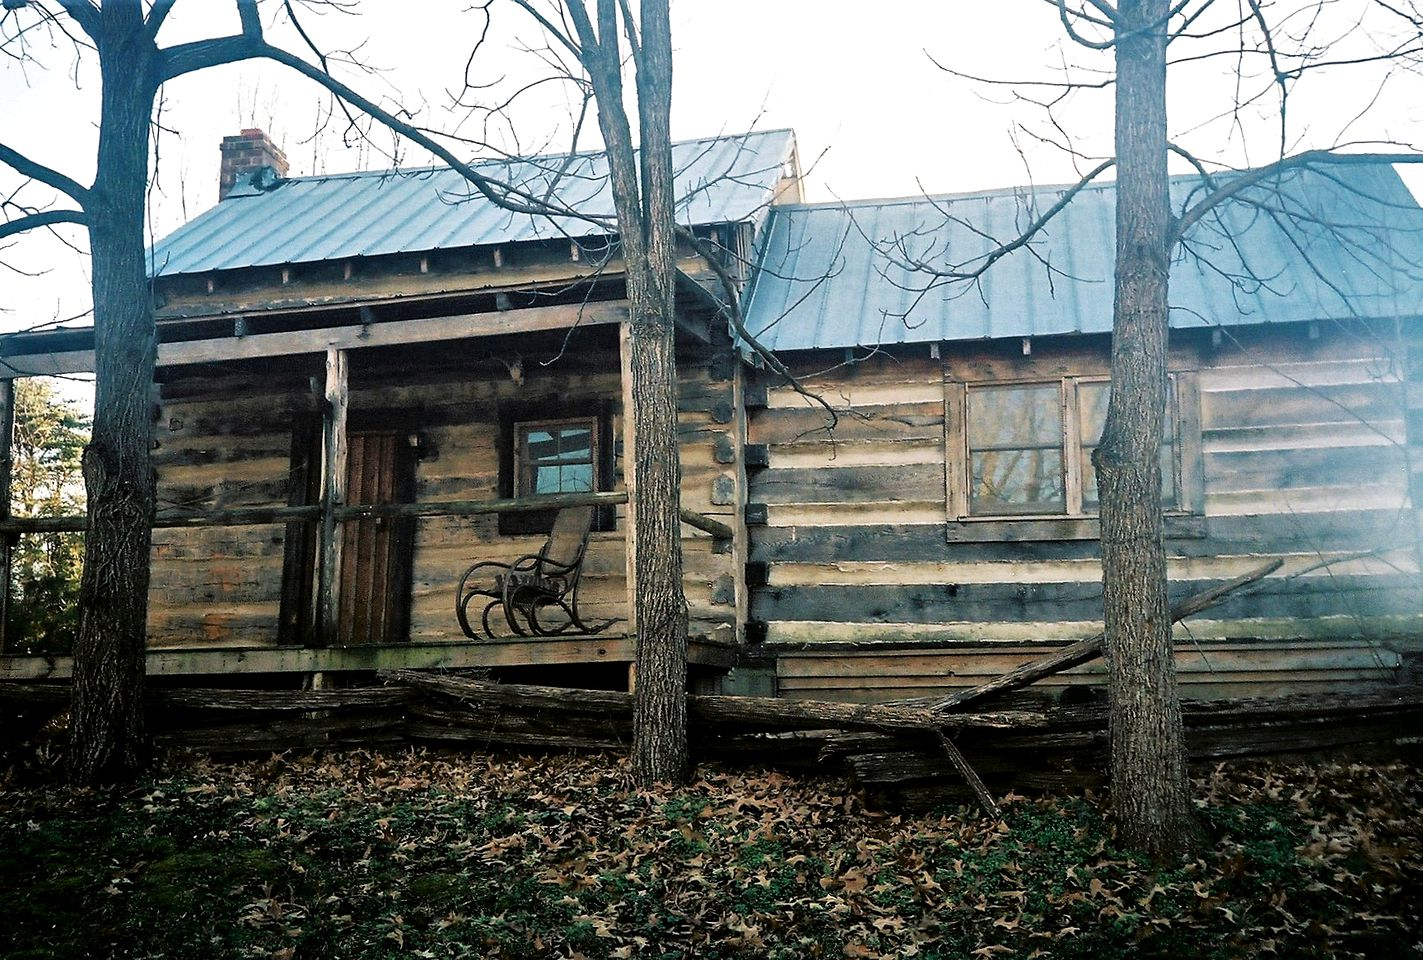 Cabins (Lexington, Virginia, United States)